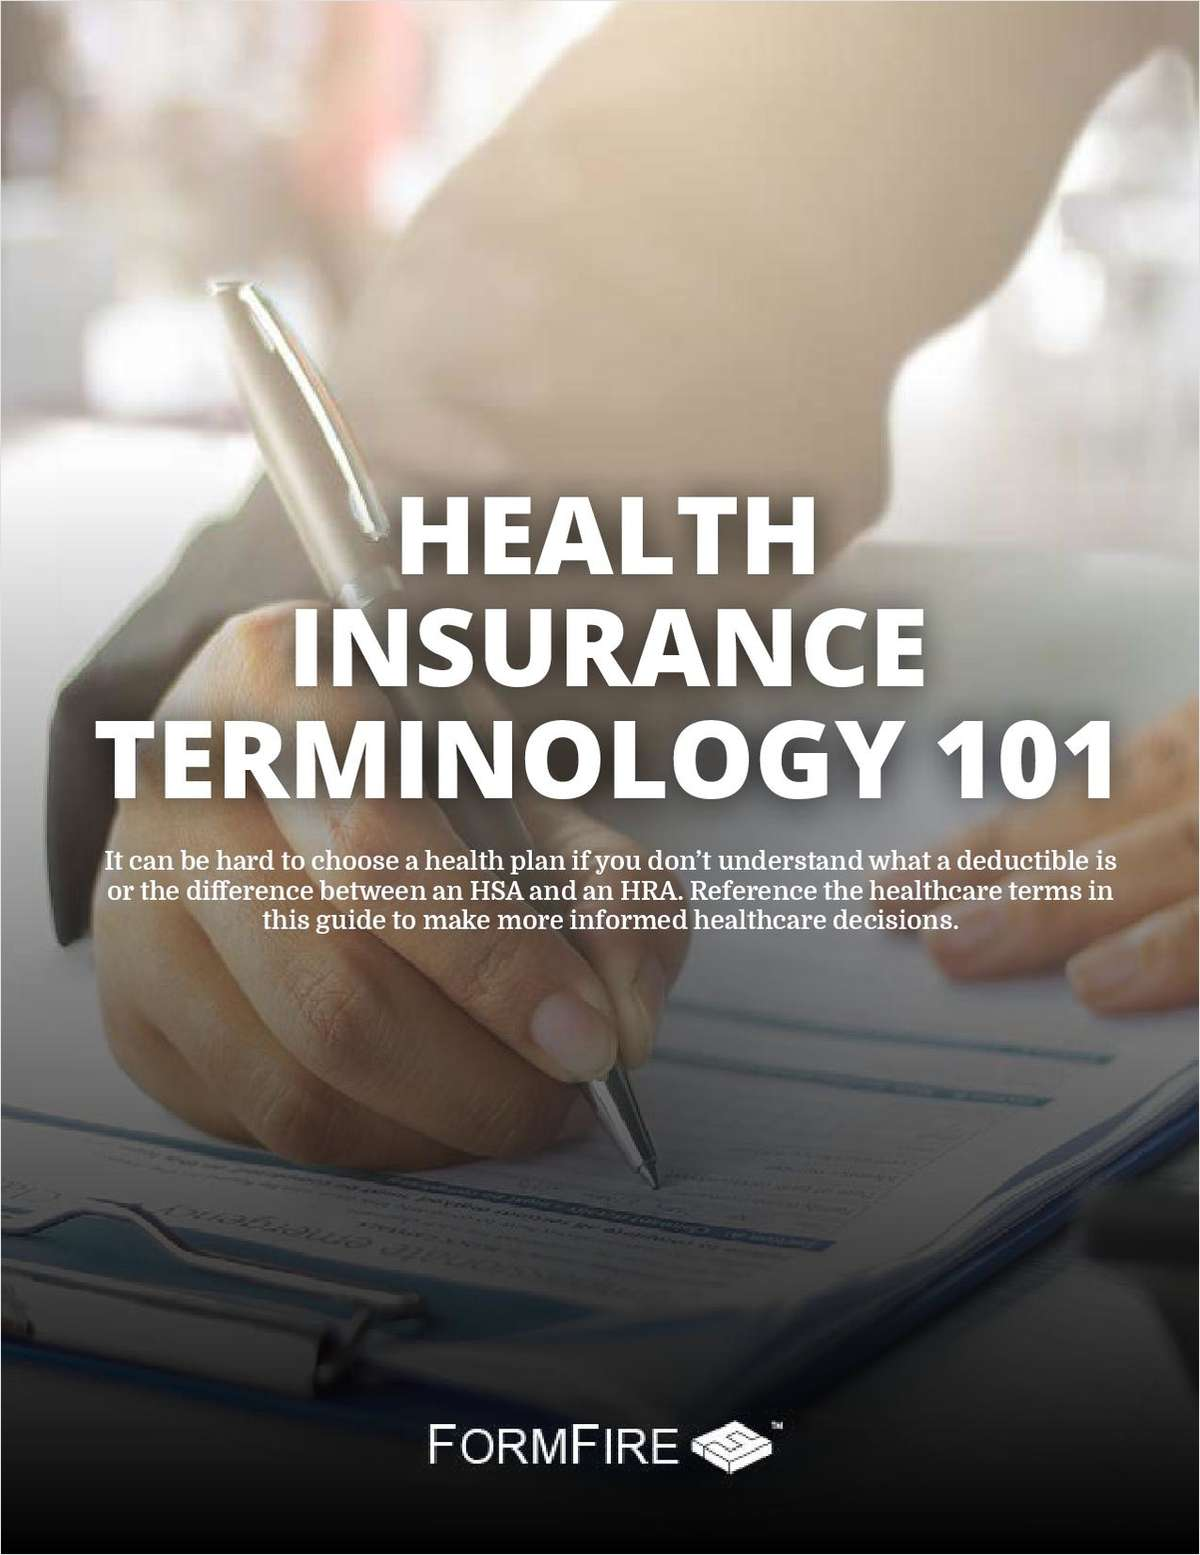 Client Tool: Health Insurance Terminology 101